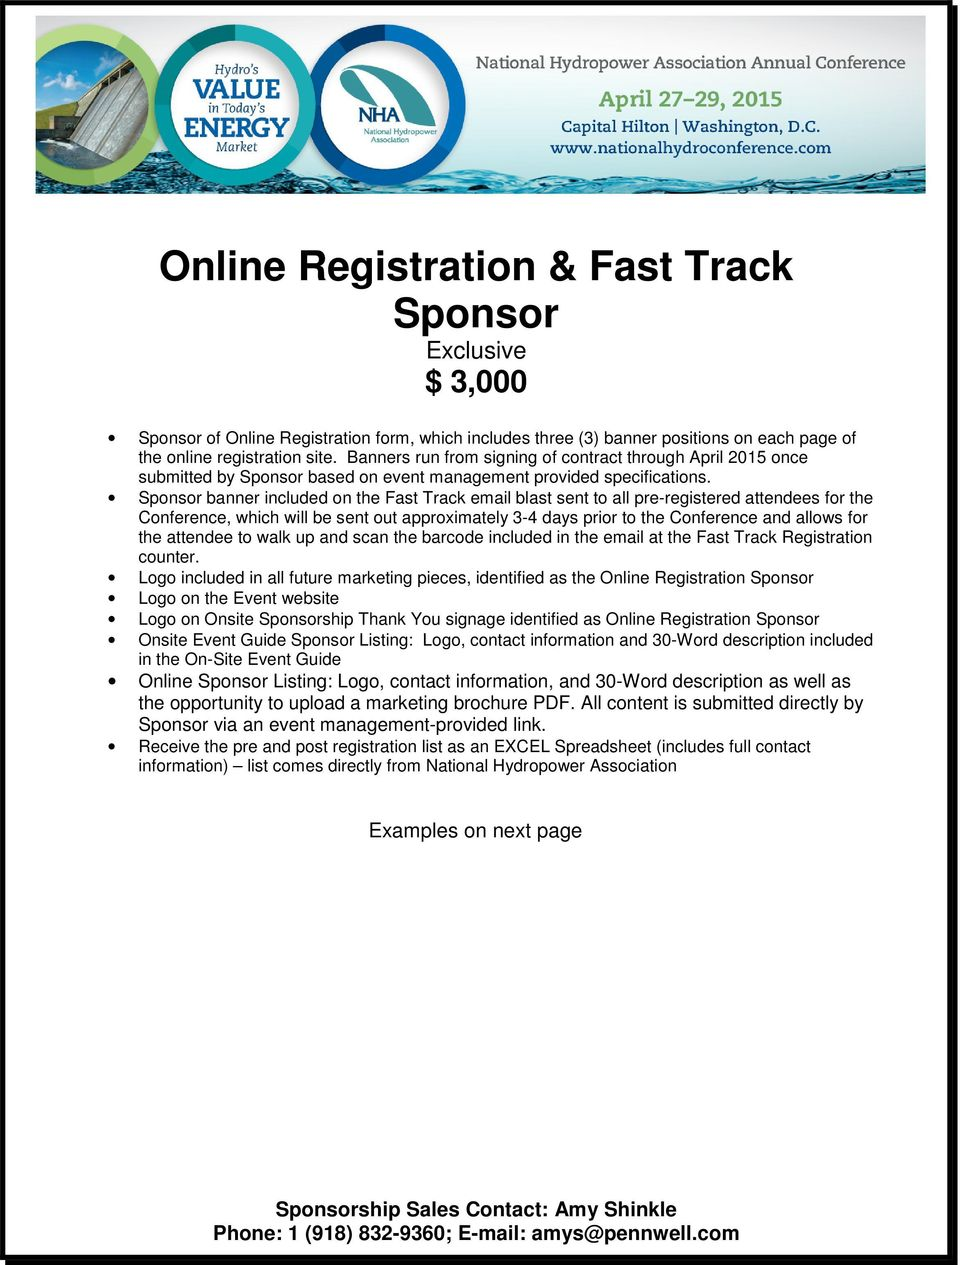 Sponsor banner included on the Fast Track email blast sent to all pre-registered attendees for the Conference, which will be sent out approximately 3-4 days prior to the Conference and allows for the